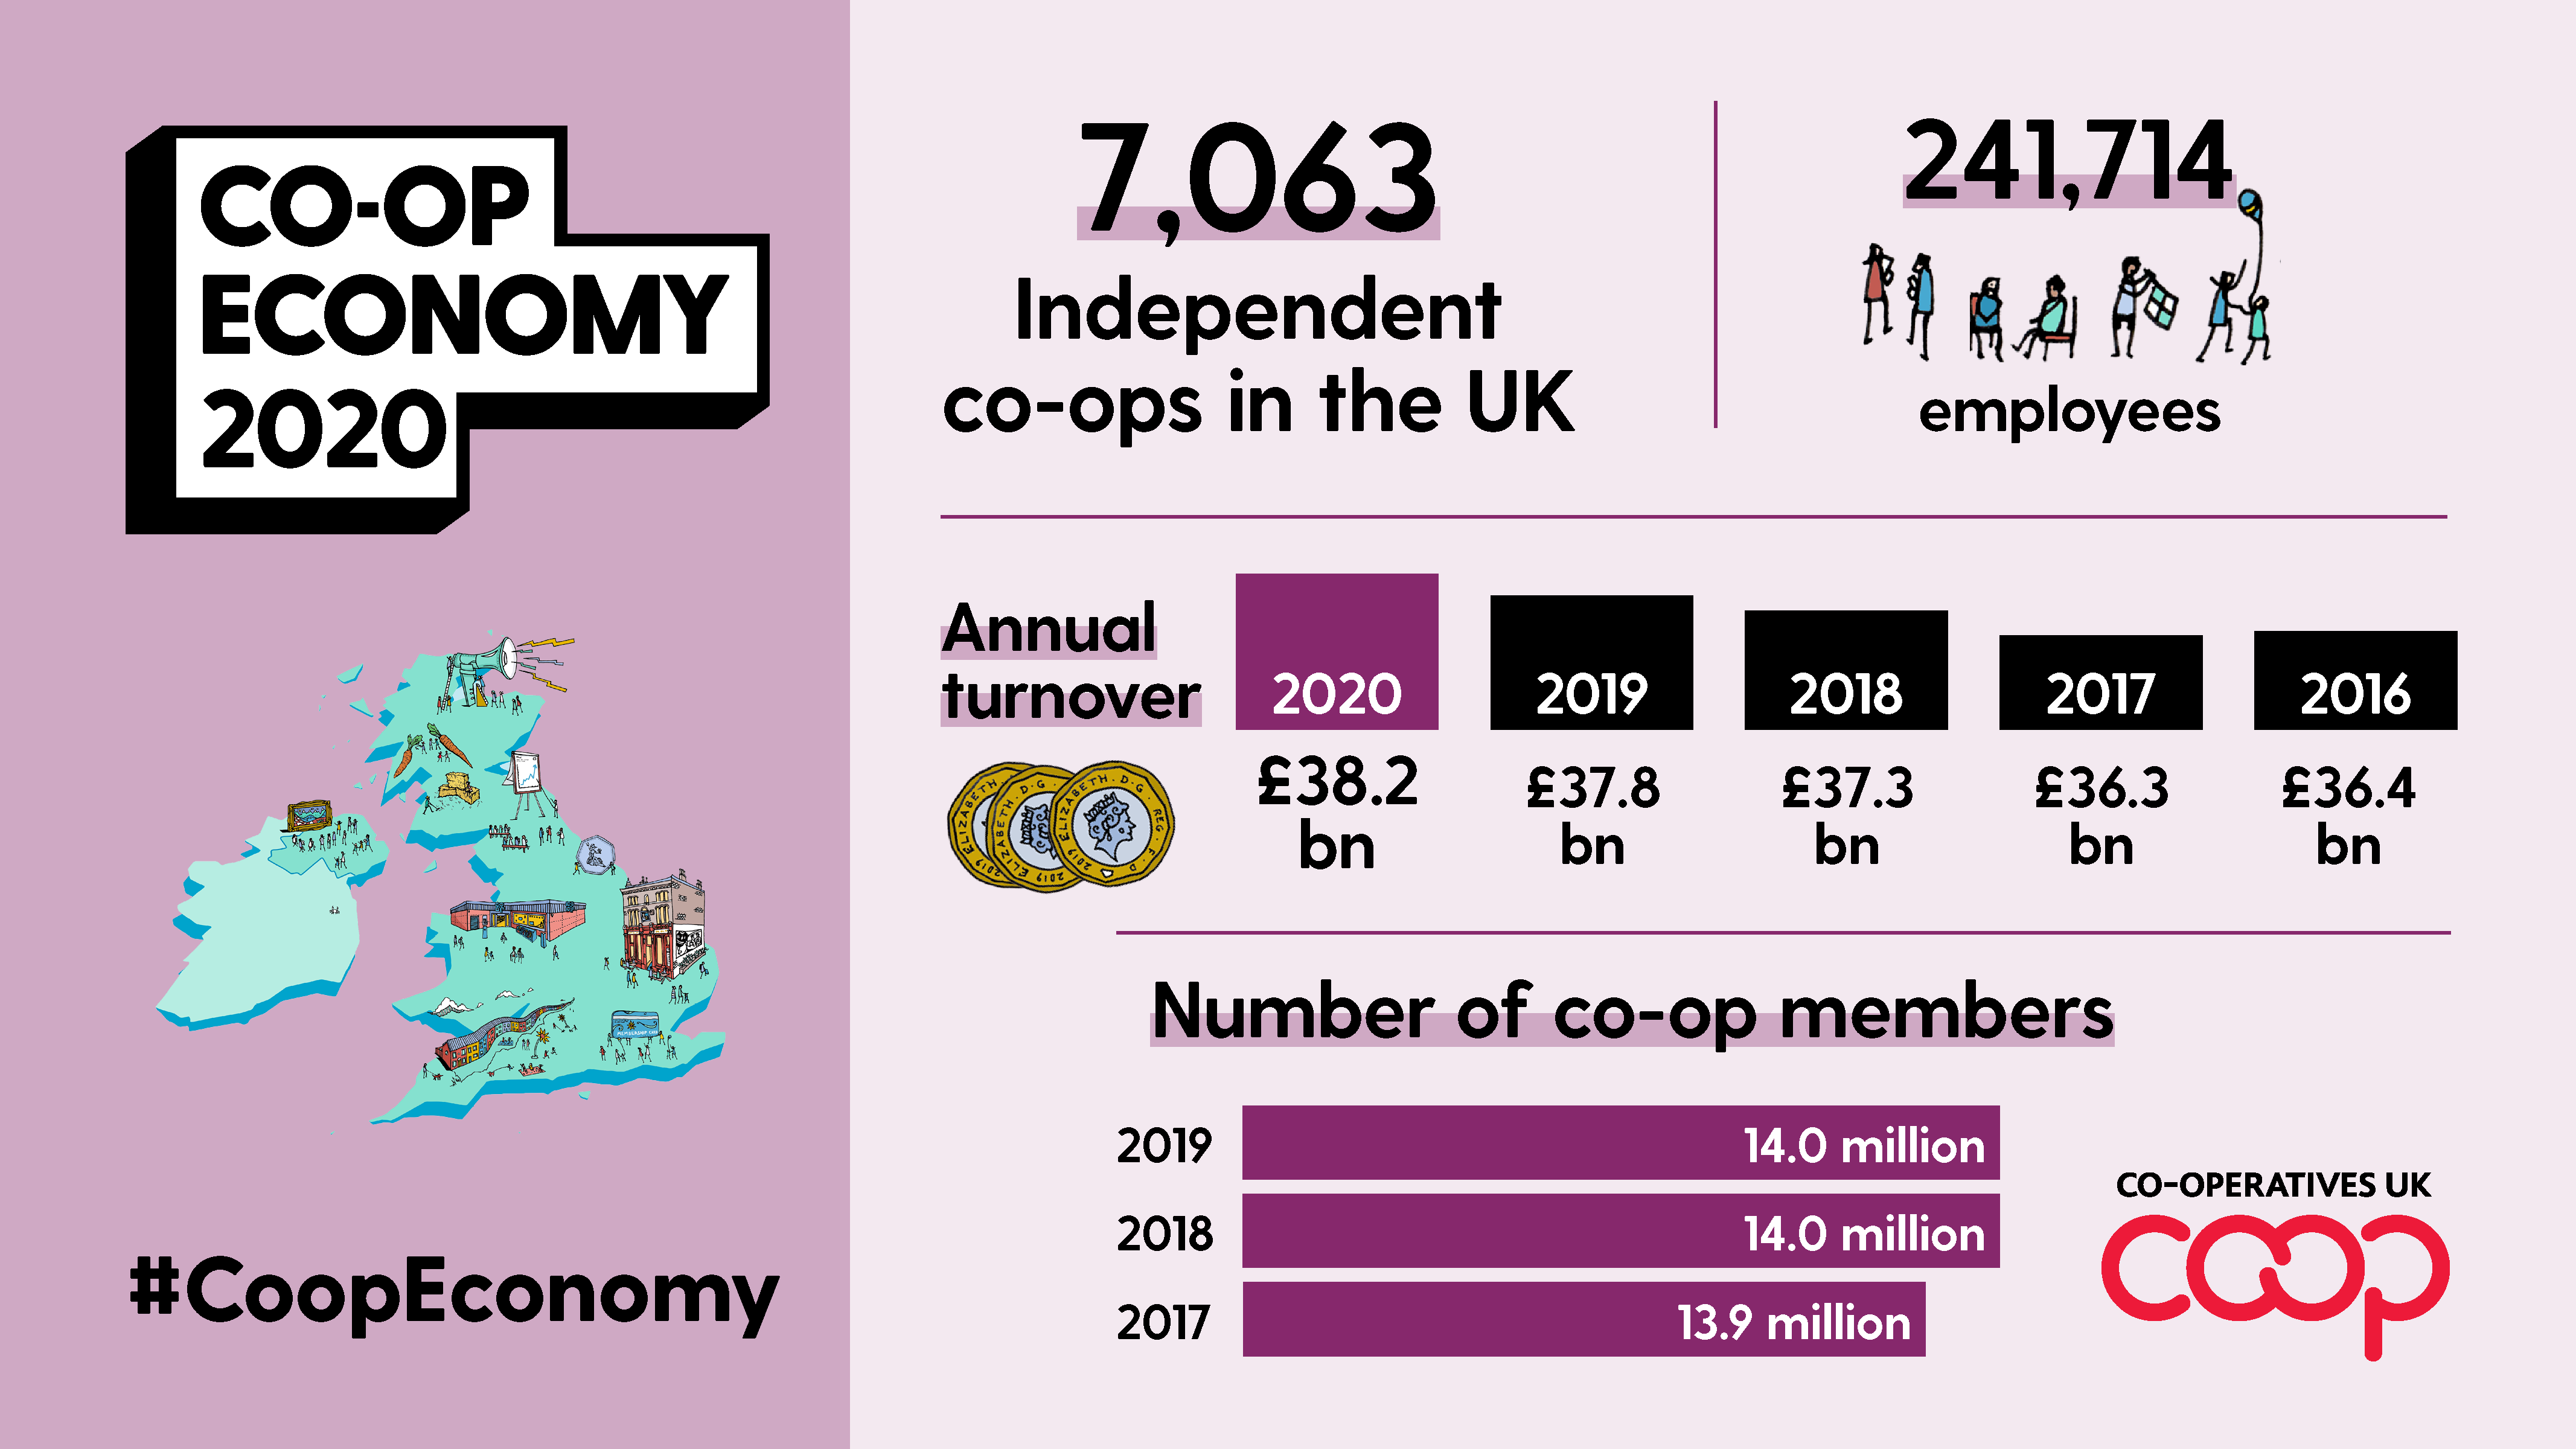 Co-op Economy 2020 figures